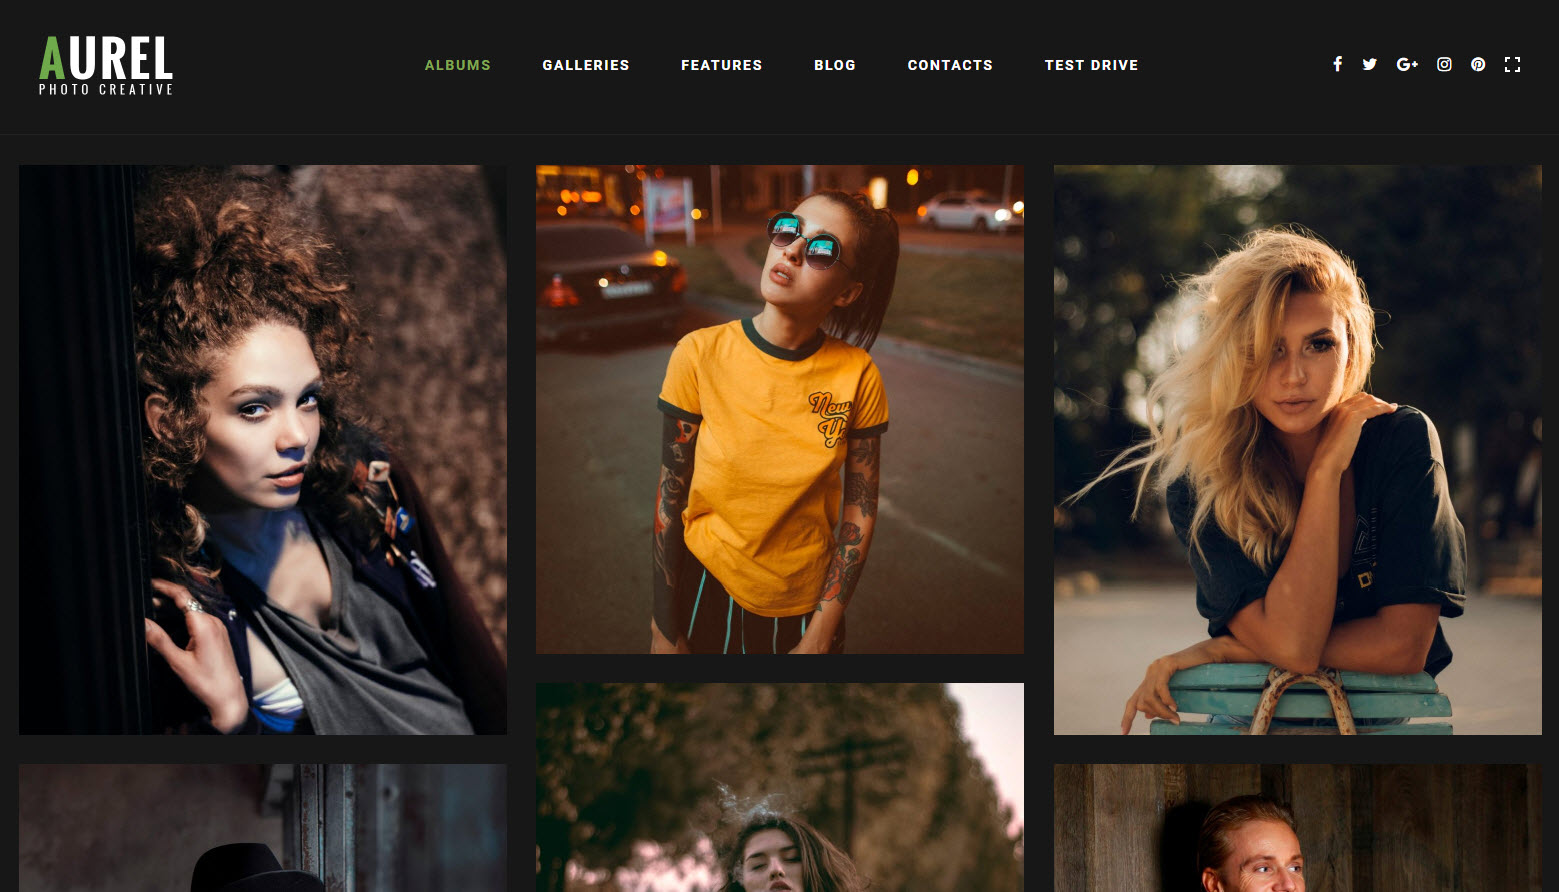 wordpress thema voor fotograaf aurel